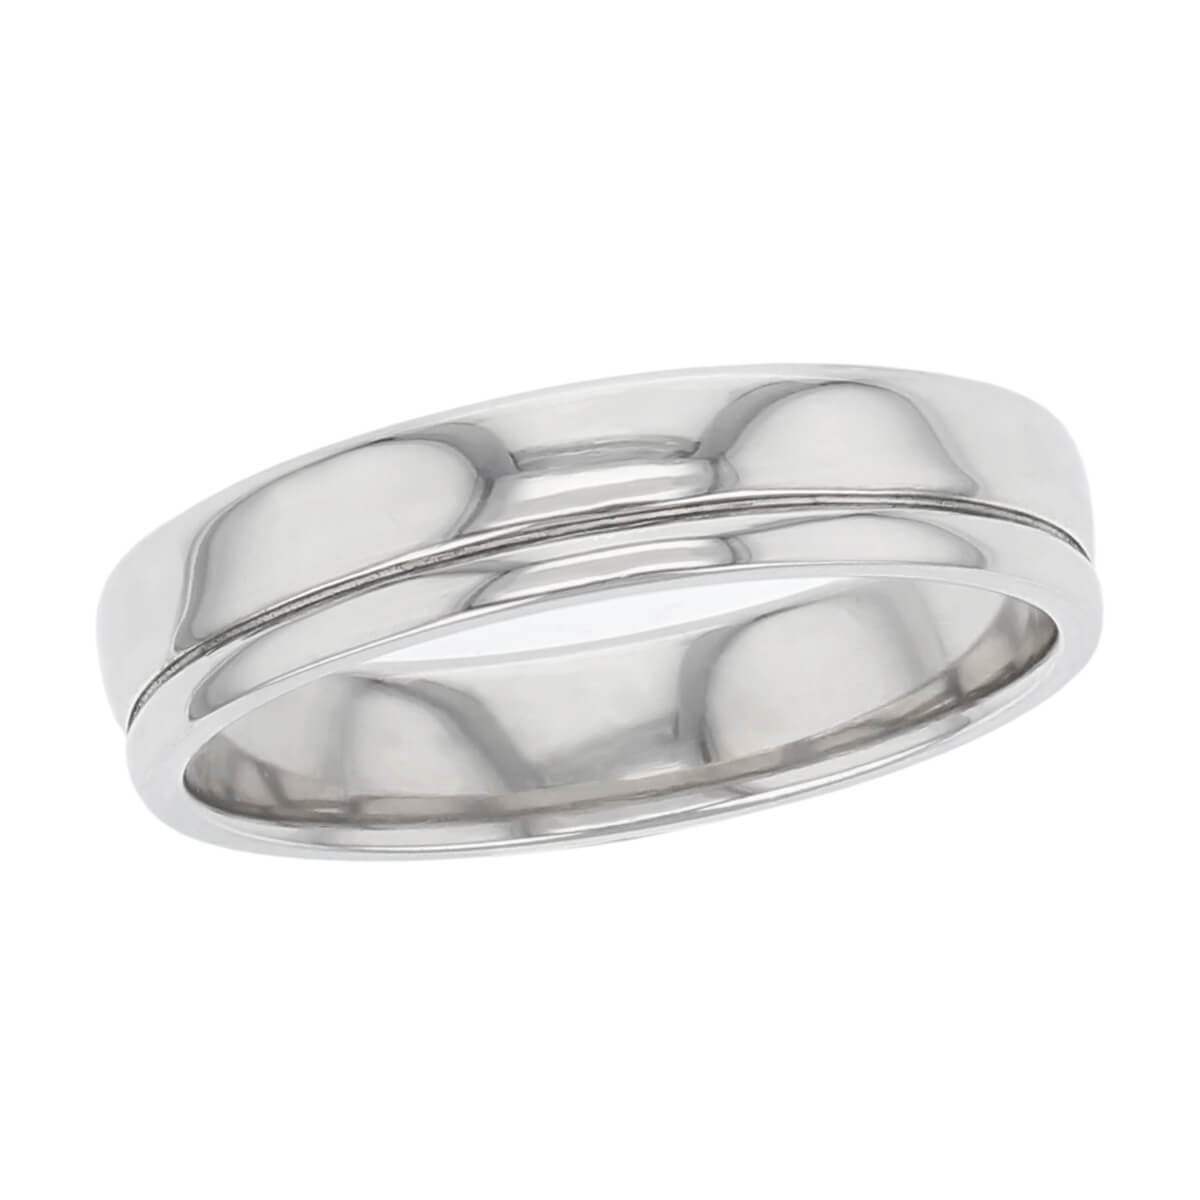 off centre groove wedding ring pattern, men's, gents